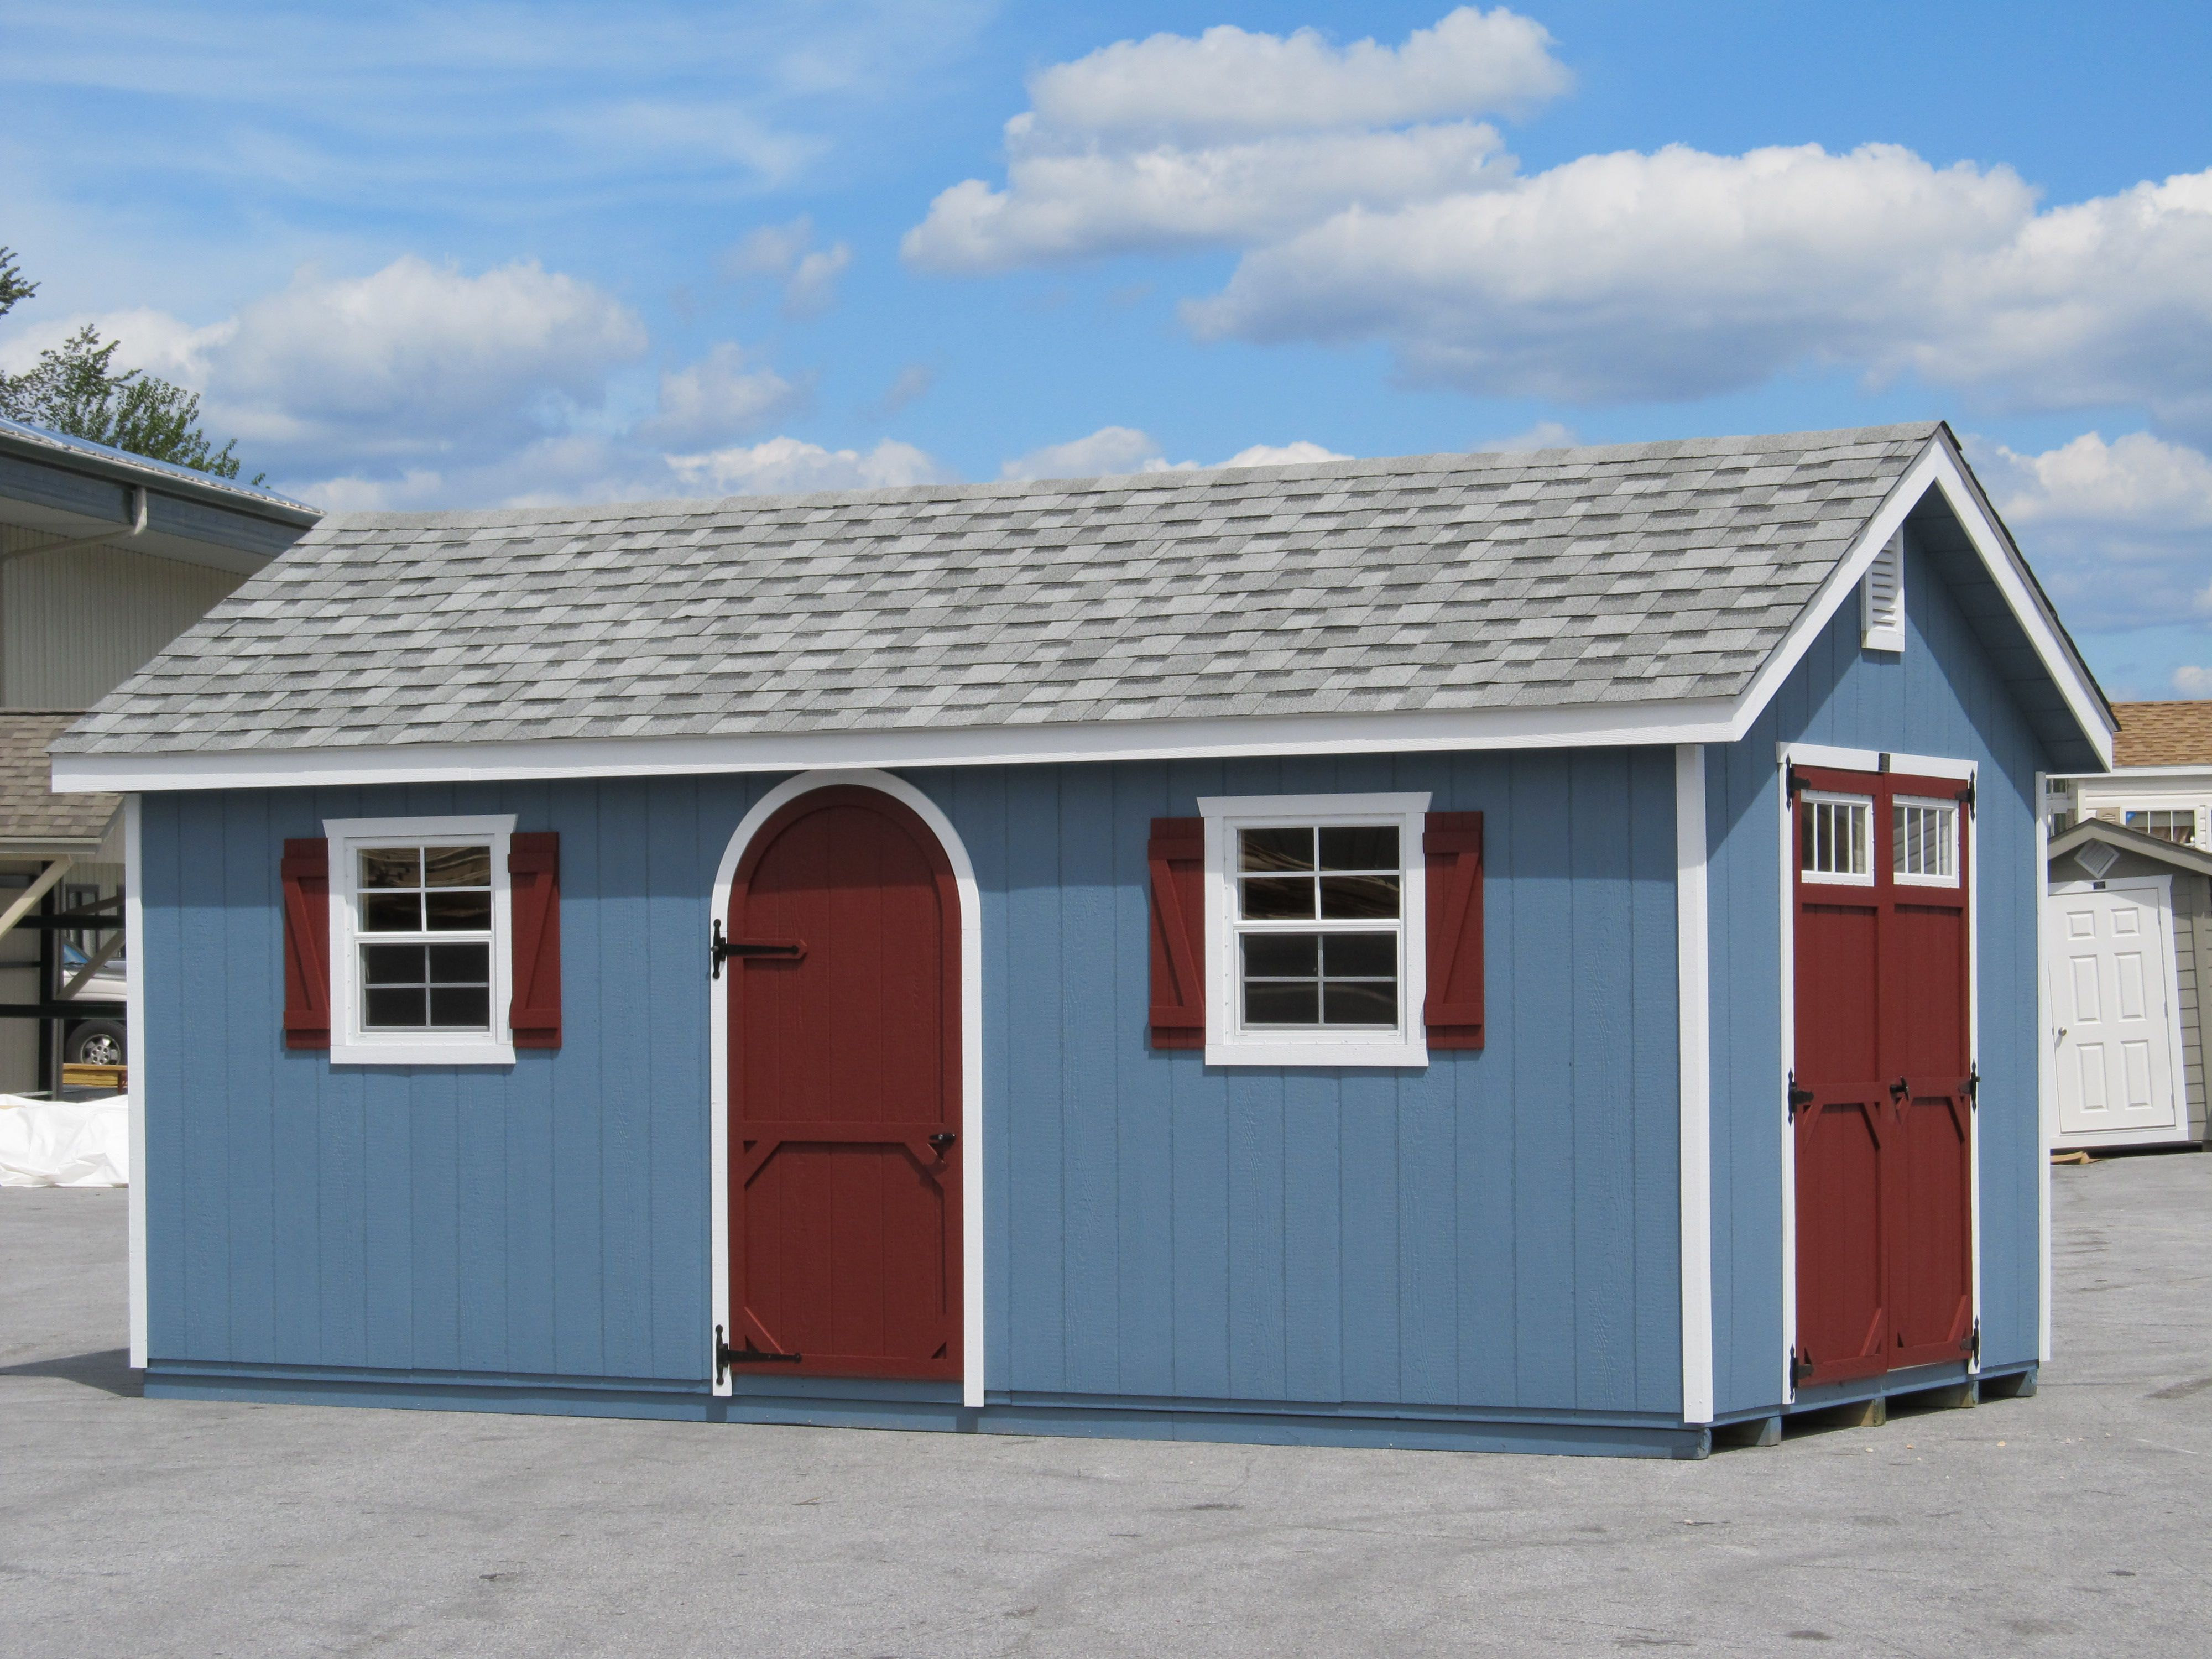 the arch door adds character to any structure garden sheds